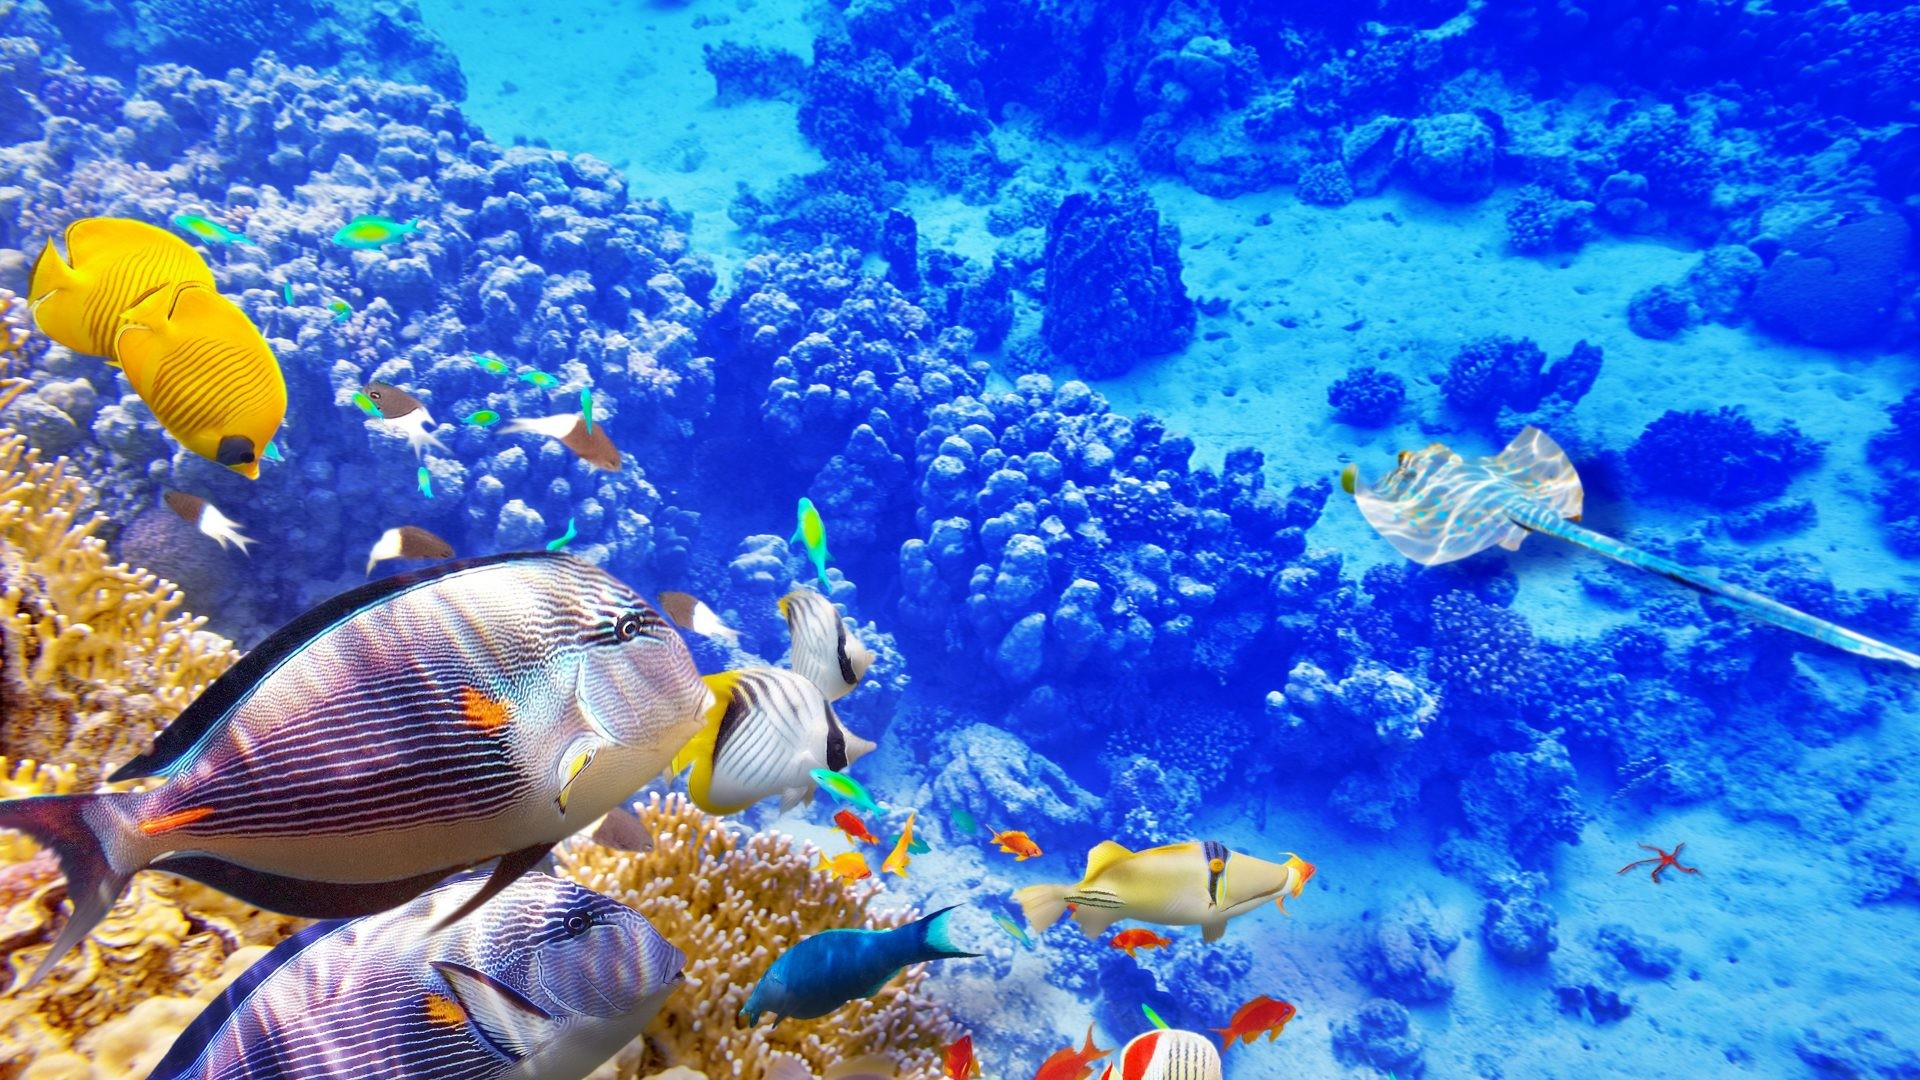 1920x1080 Reef Tag - Ocean Reef World Coral Underwater Fish Wallpapers Desktop  Background Nature for HD 16